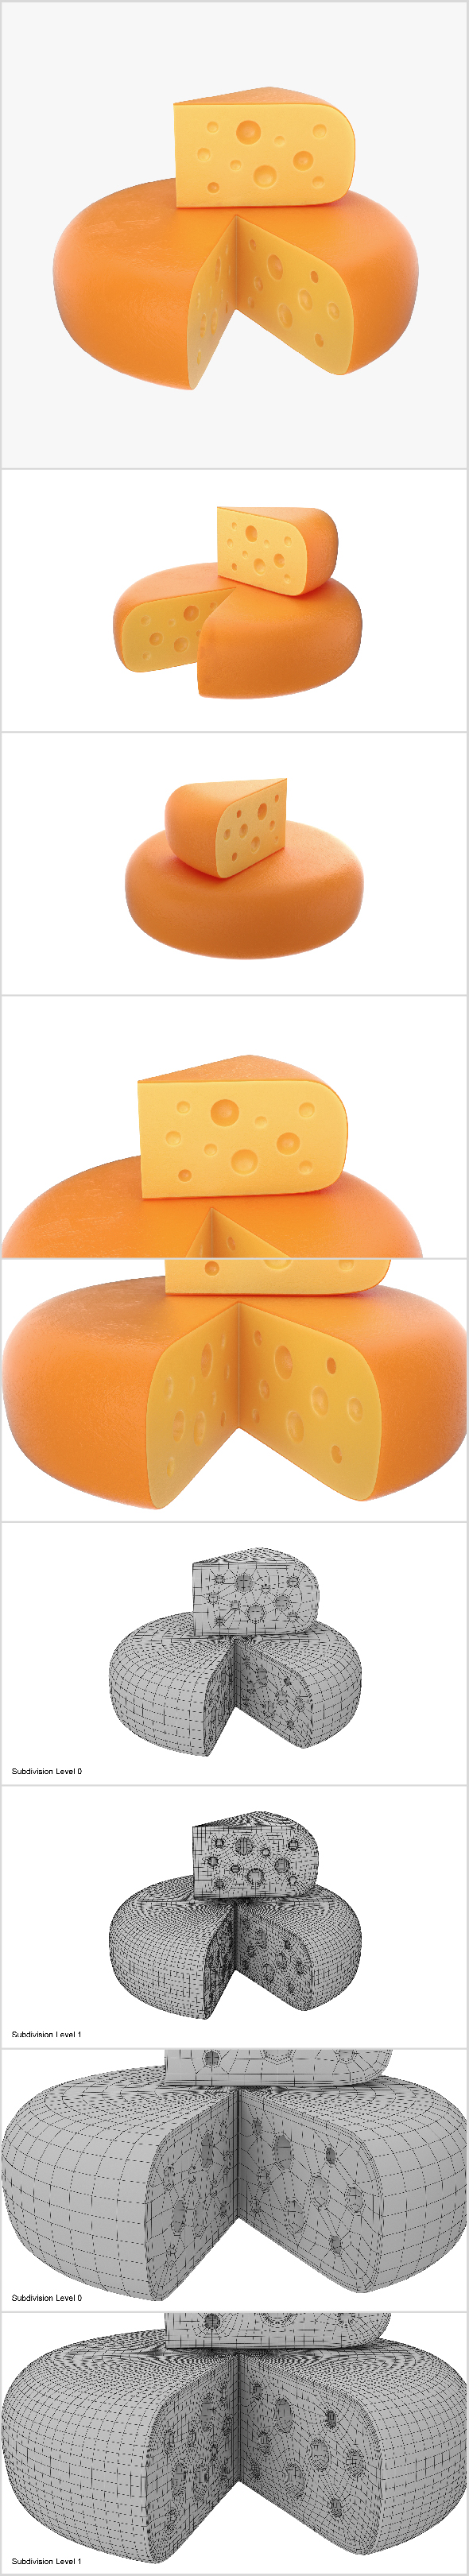 Cheese wheel and piece